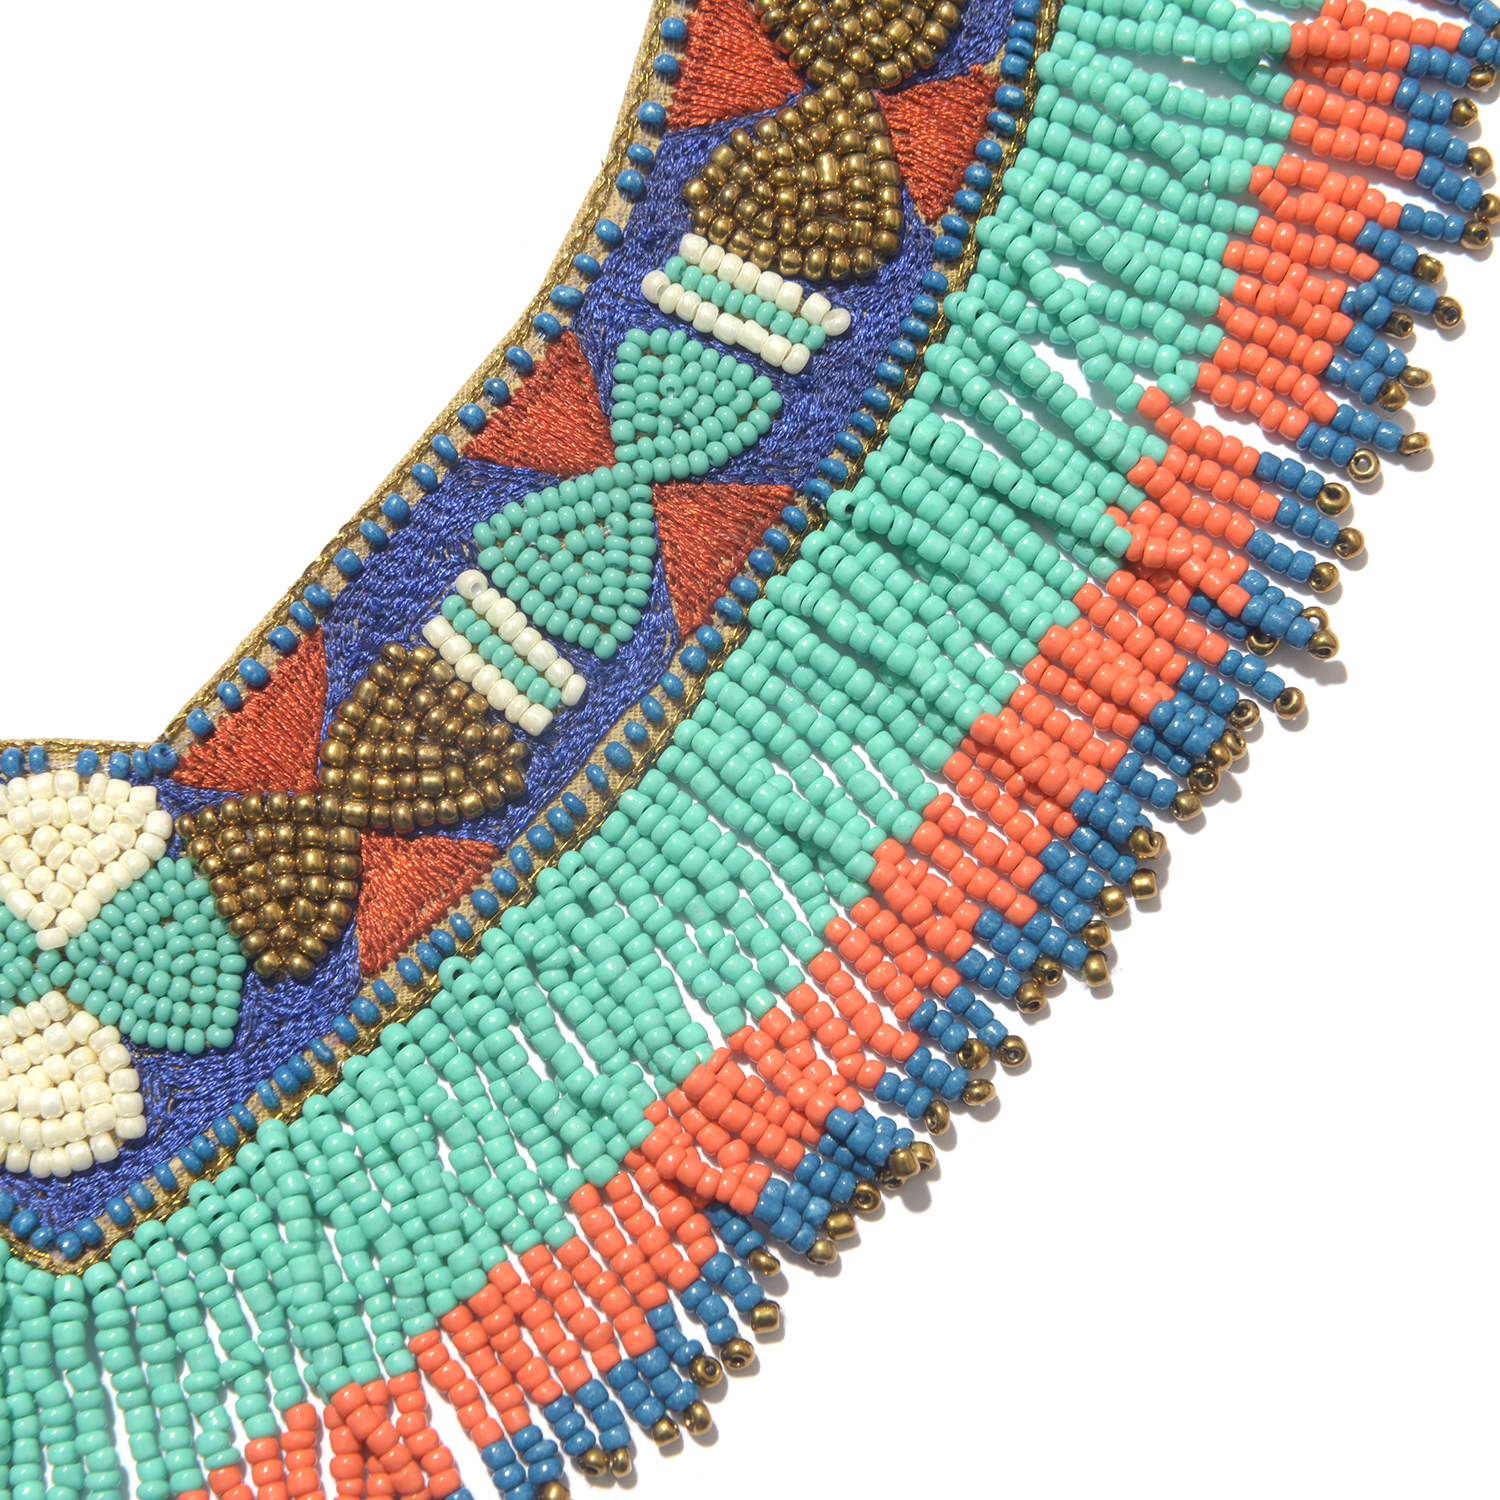 Handcrafted Multi Color Seed Bead and Fabric V-Neck Bib Necklace with Fringes (Adjustable)